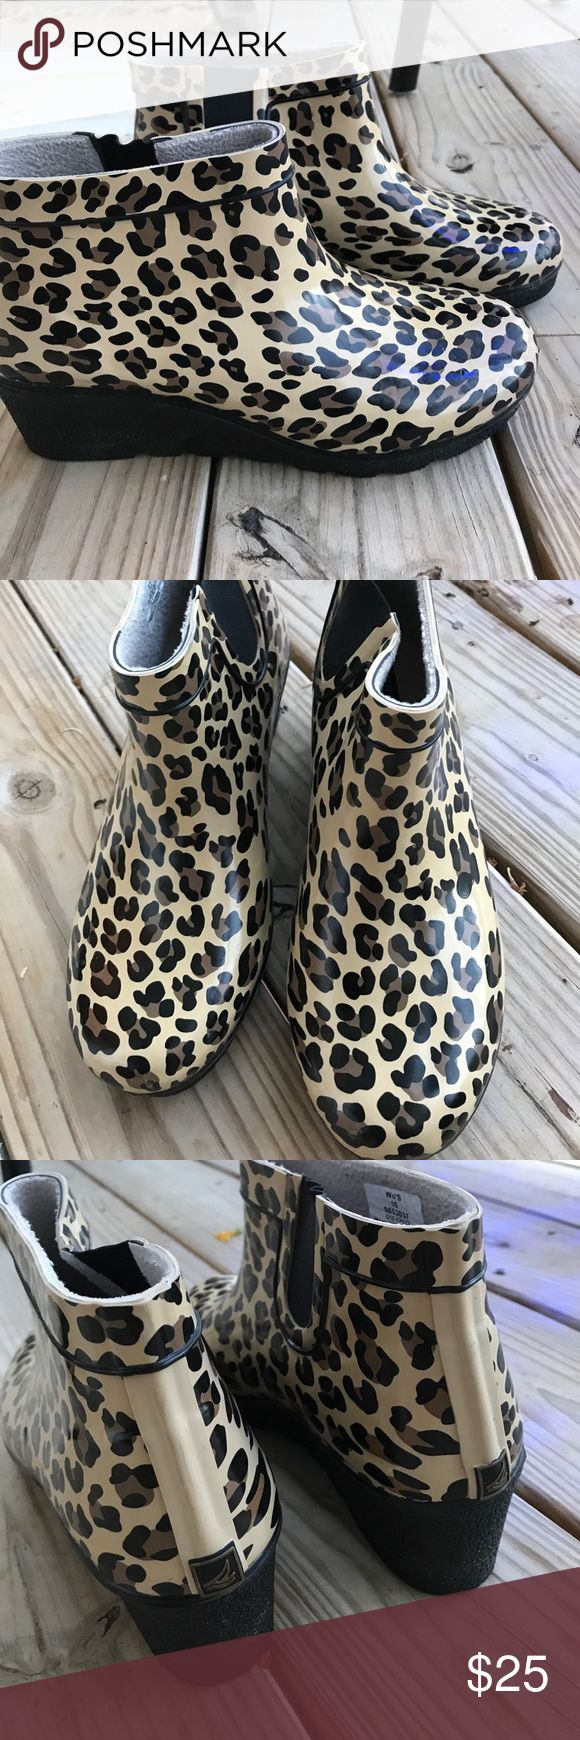 Sperry Waterproof Wedge Rain Ankle Boots In like new condition. Rubber soled, waterproof boot with 2 inch wedge heel and leopard print. Soft insulated lining. Slip on with elastic stretch band. Sperry Top-Sider Shoes Winter & Rain Boots